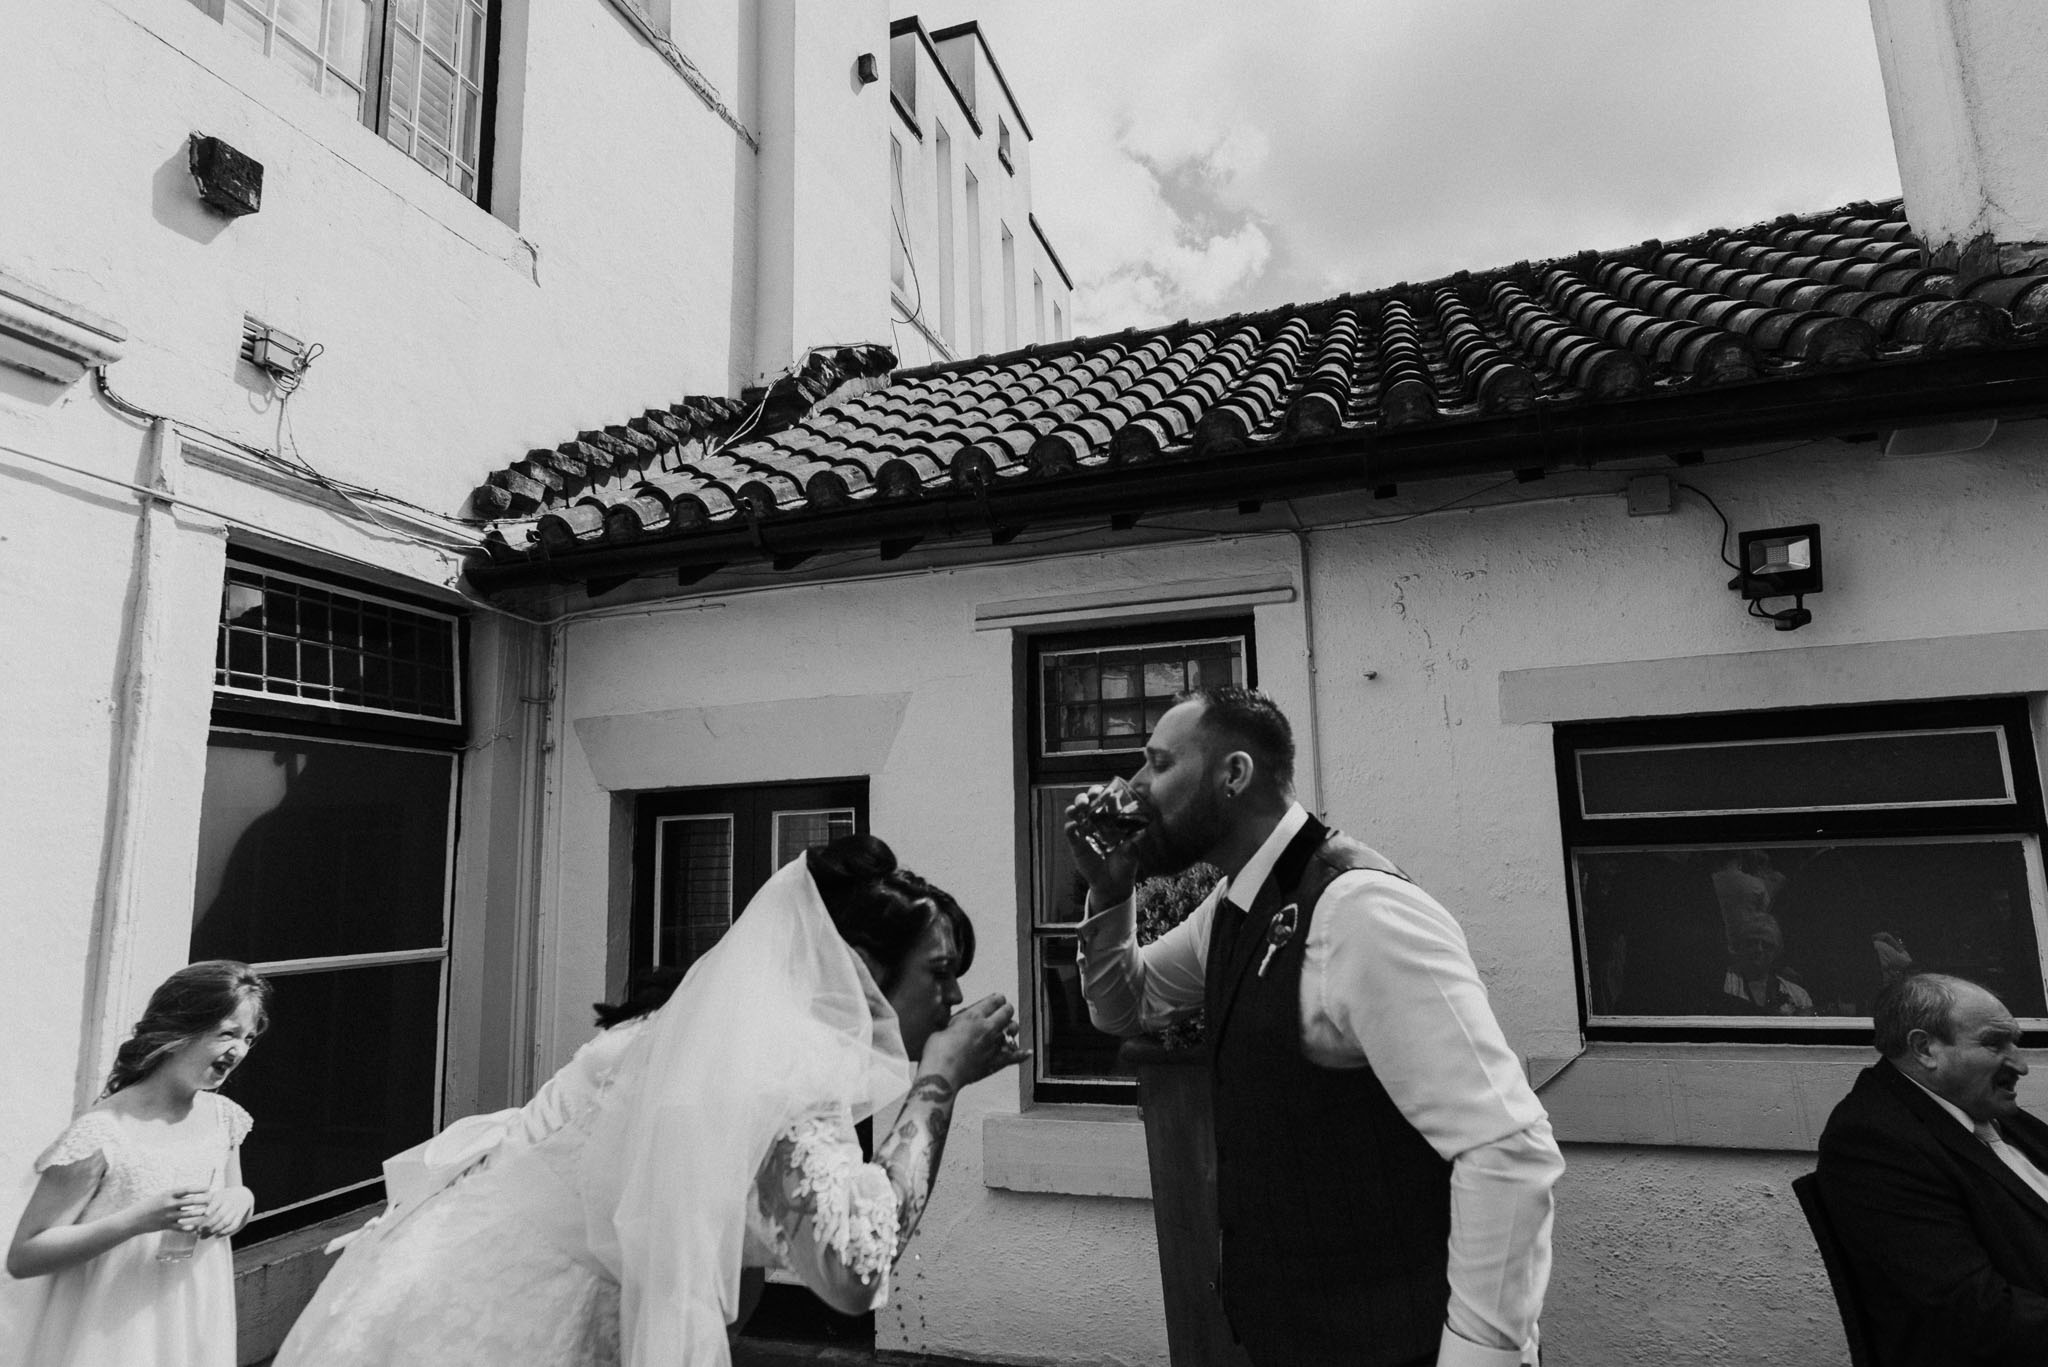 bride and groom drinking jager on wedding day, tattood bride for alternative wedding photography